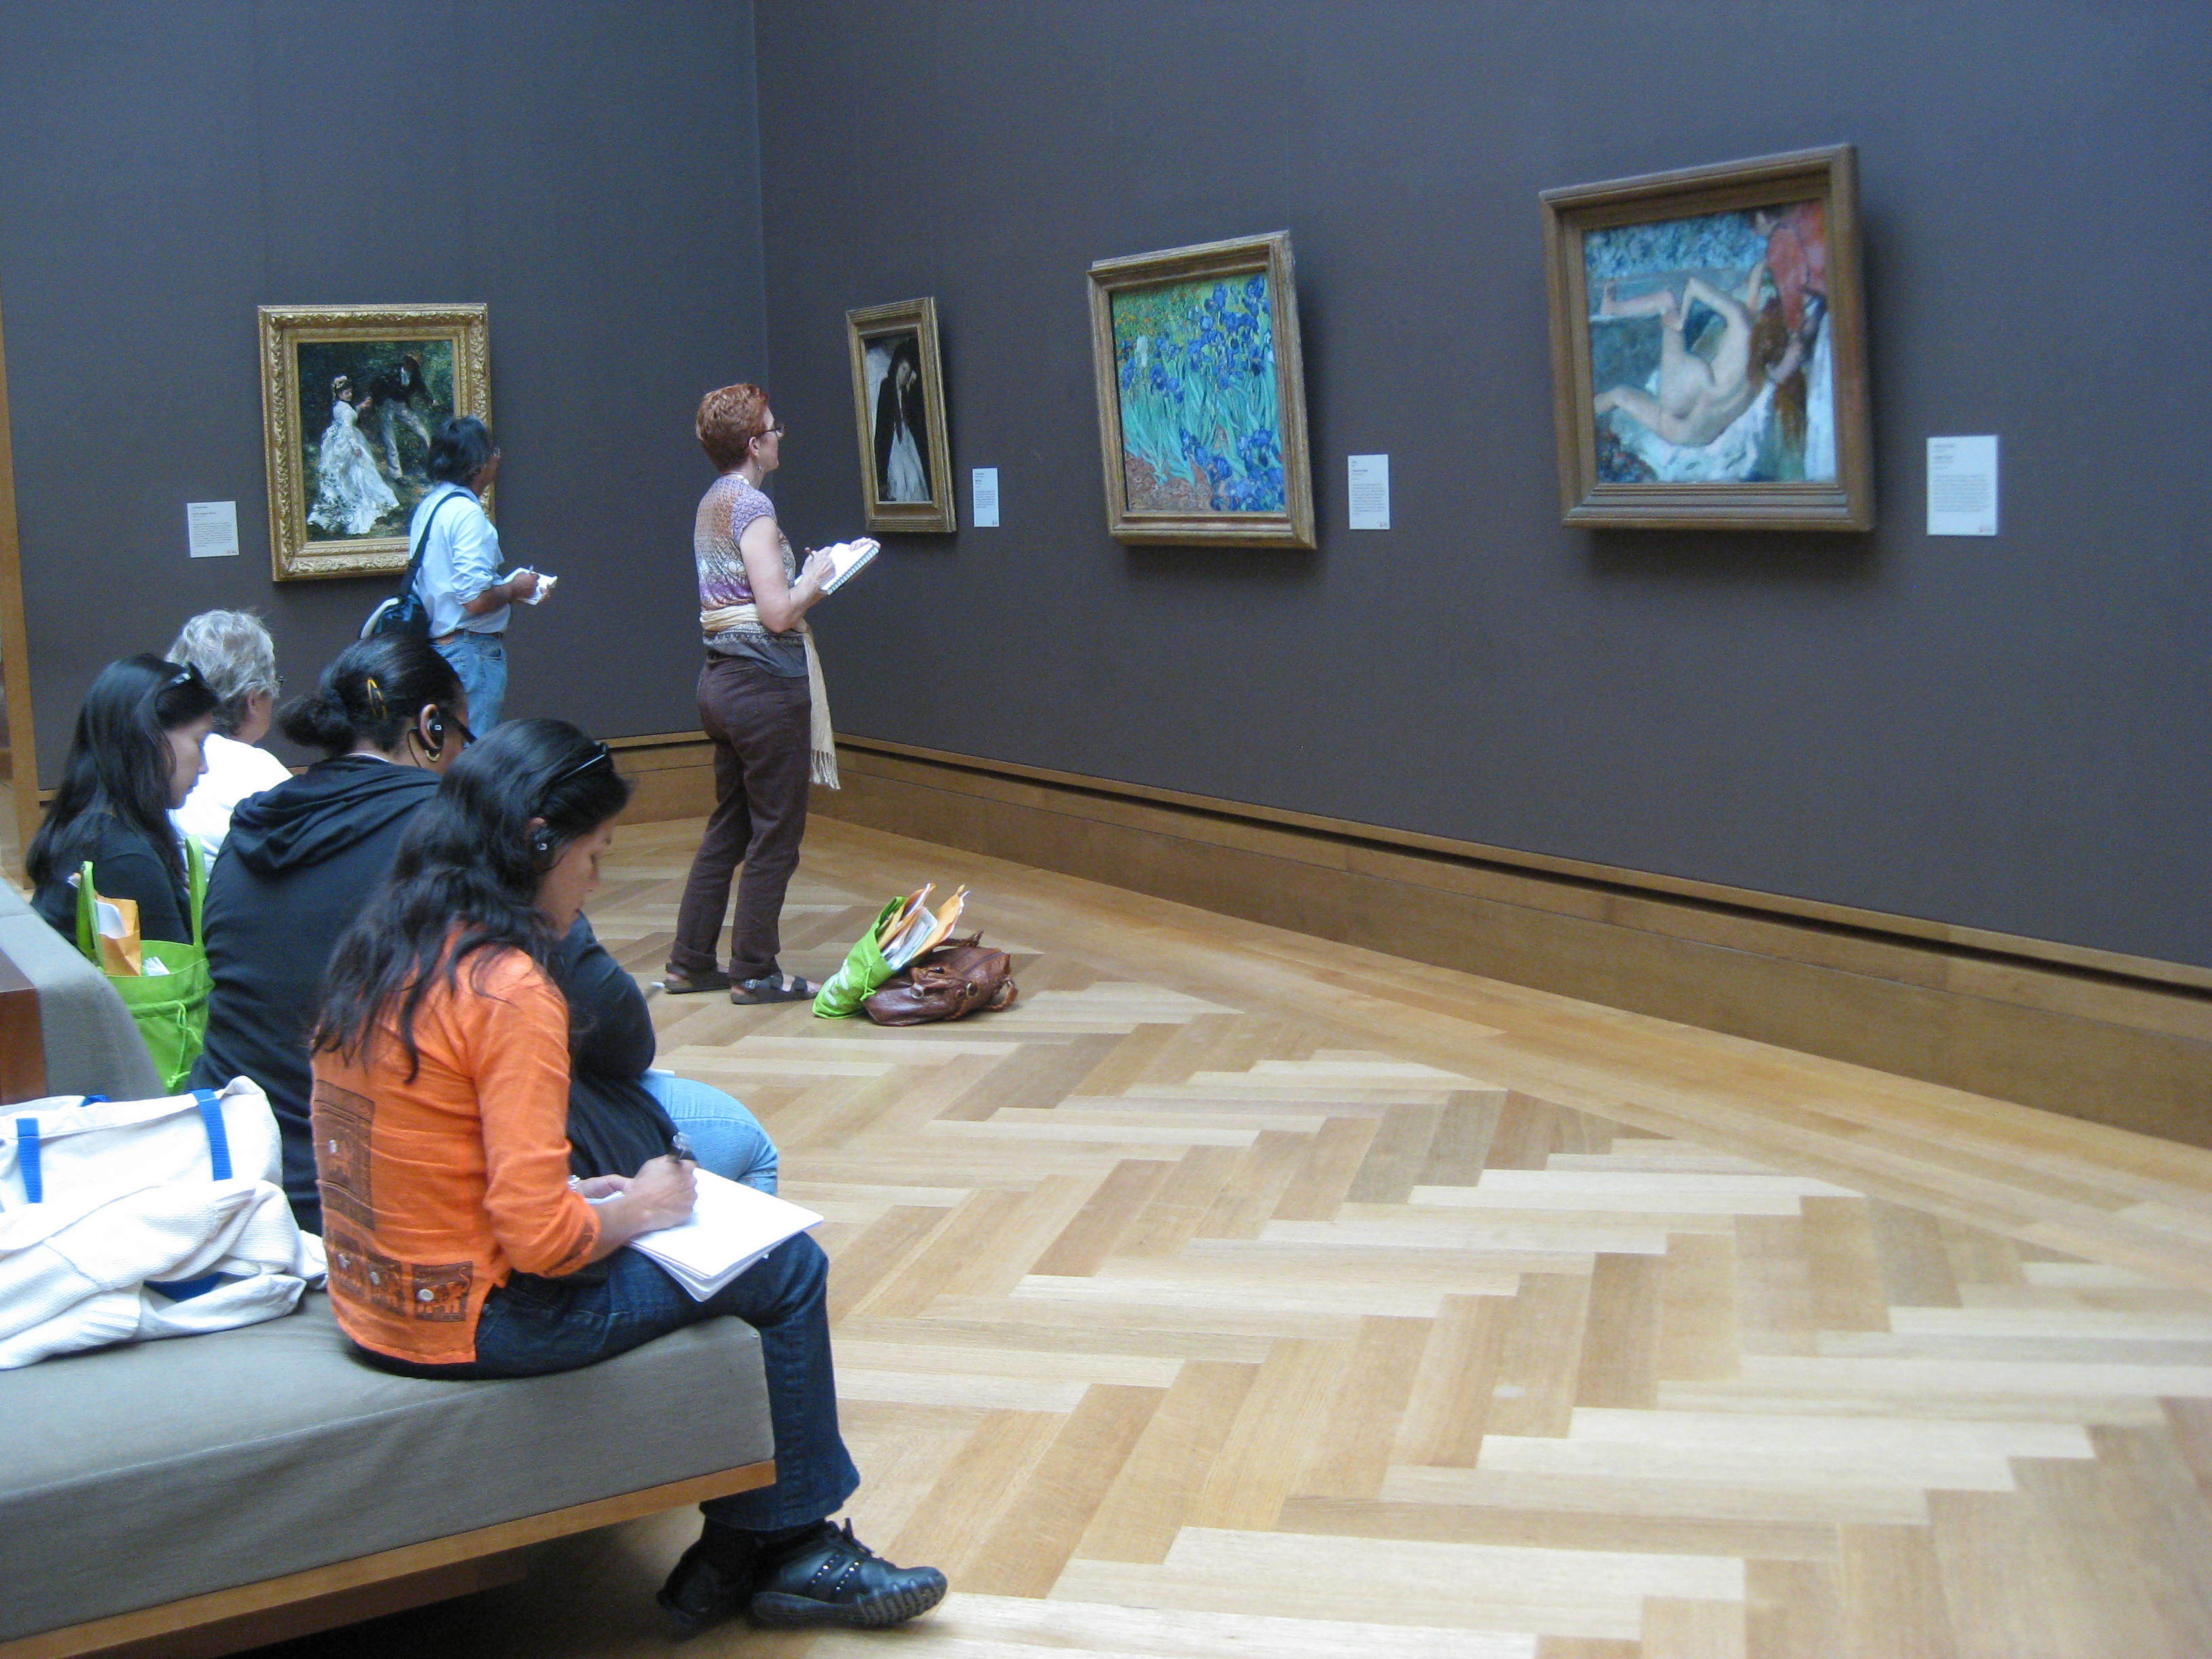 We were able to journal in quiet galleries before the museum opened to the public—at least for a little while!